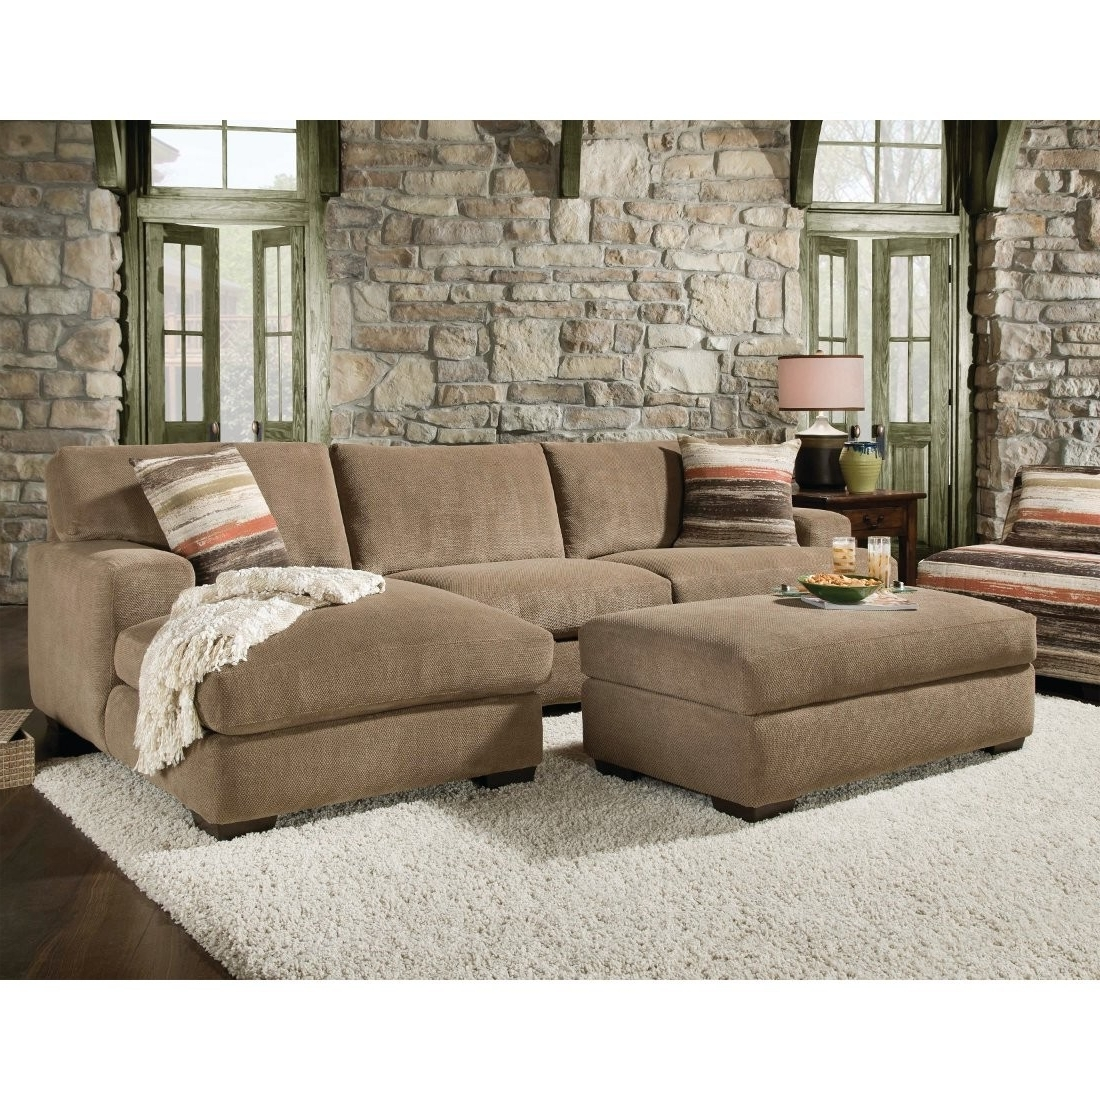 Most Recent Small Couches With Chaise Regarding Sofa ~ Luxury Leather Sofa With Chaise Lounge Cute Small Sectional (View 4 of 15)